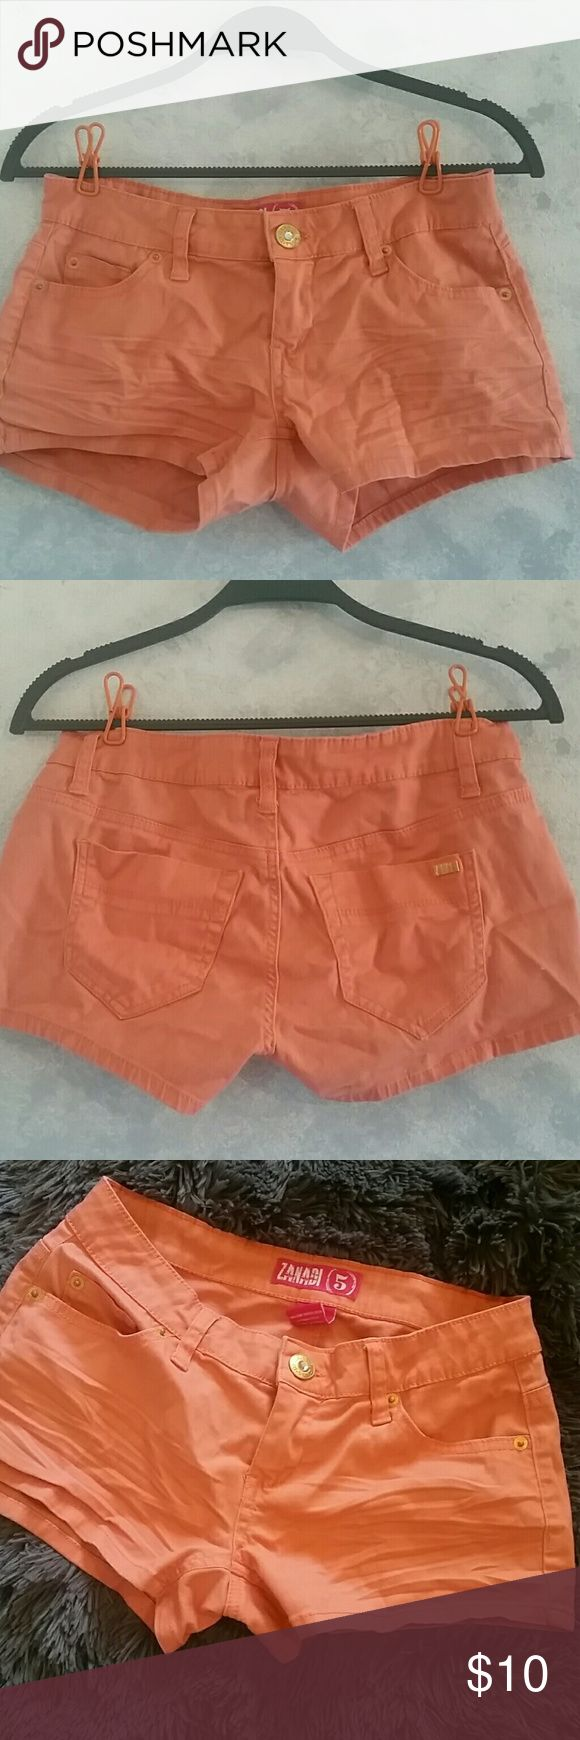 "CUTE! Peach shorts: perfect for summer! Super cute peach colored shorts with gold buttons. Size 5, measurements are...  Length: 9.5"" Waist: 14"" Inseam: 7""  Keep in mind that the camera quality is poor and could not capture the color very well, but the color is definitely more peachy than orange.  Feel free to comment any questions, offers are considered and packages sent ASAP! Zana Di Shorts"